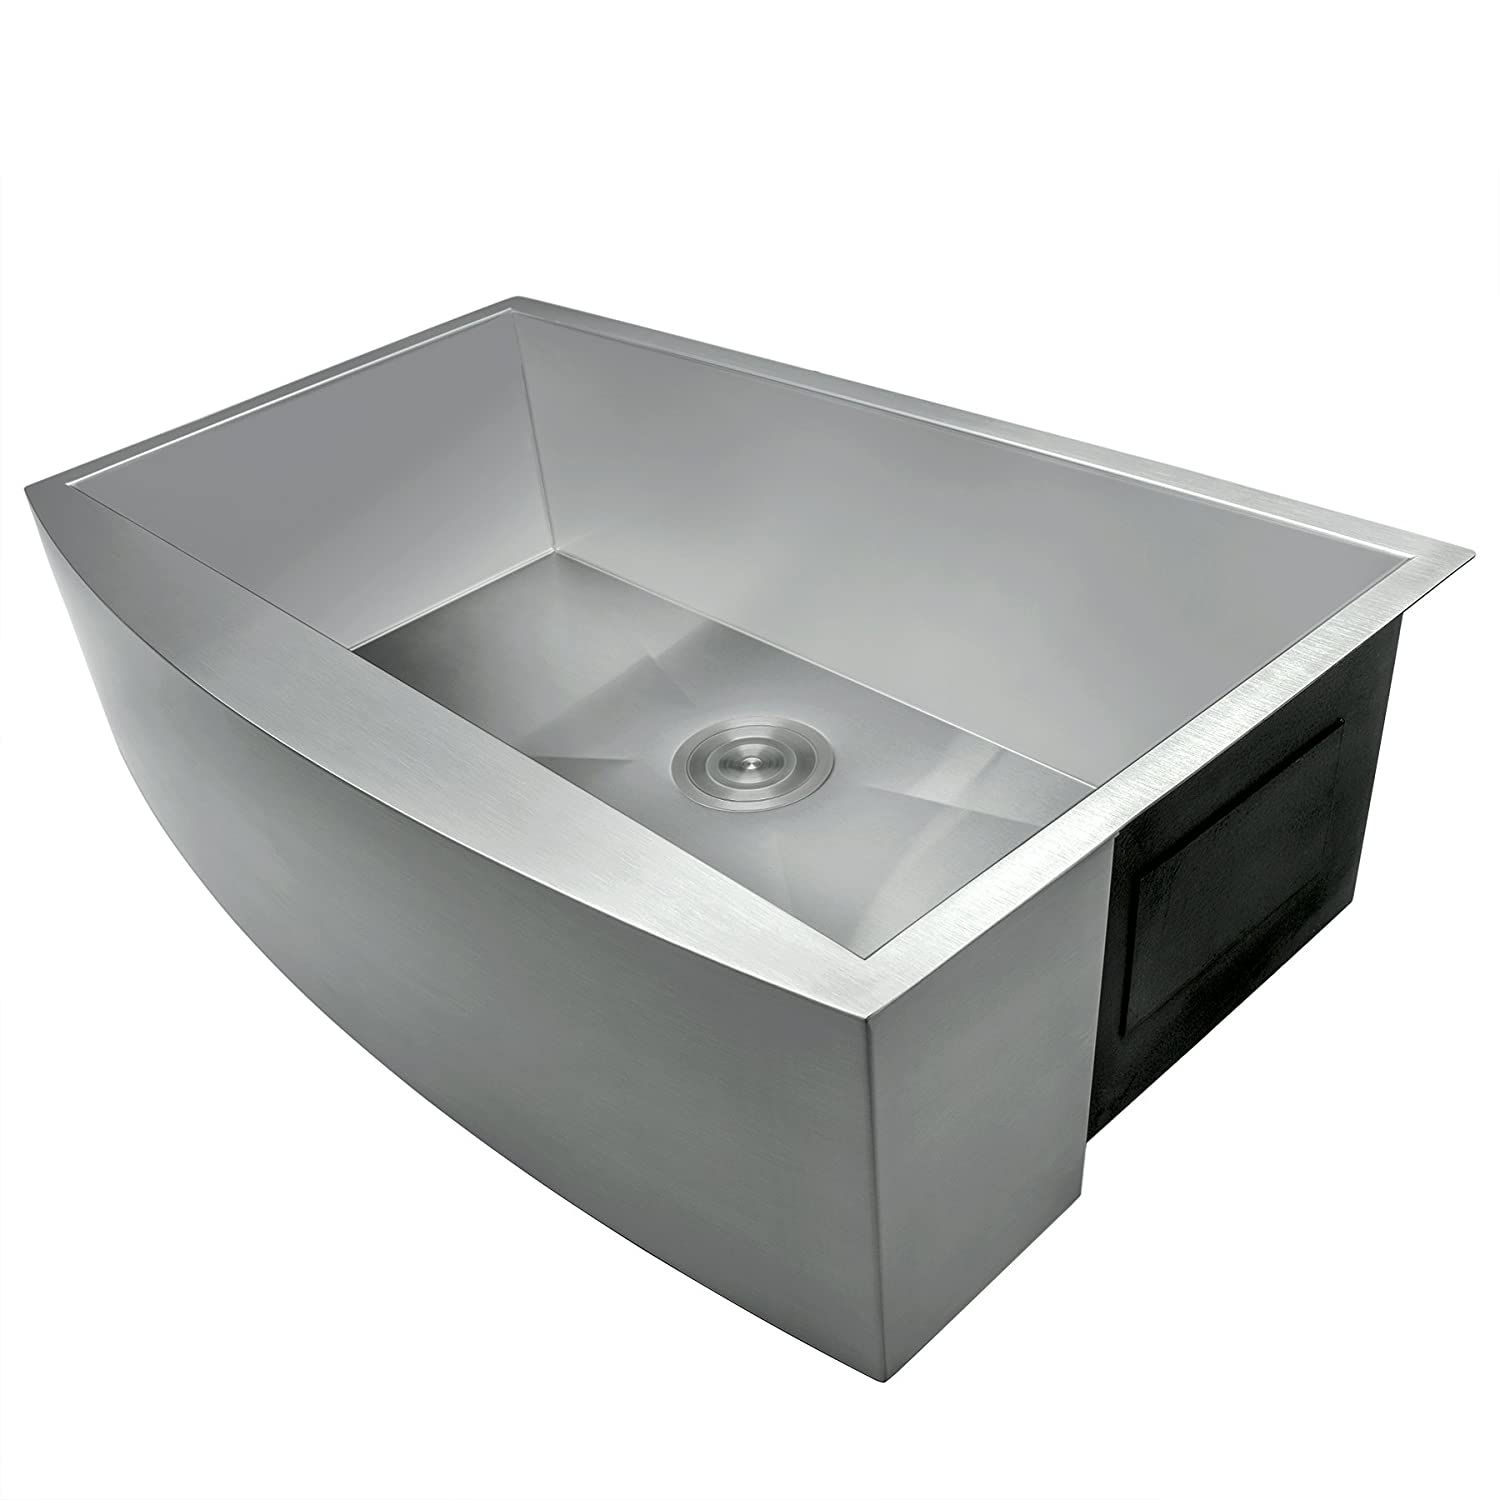 Elegant Bathroom Sinks: Bathroom Sink Dreamy-person: Elegant Stainless Steel